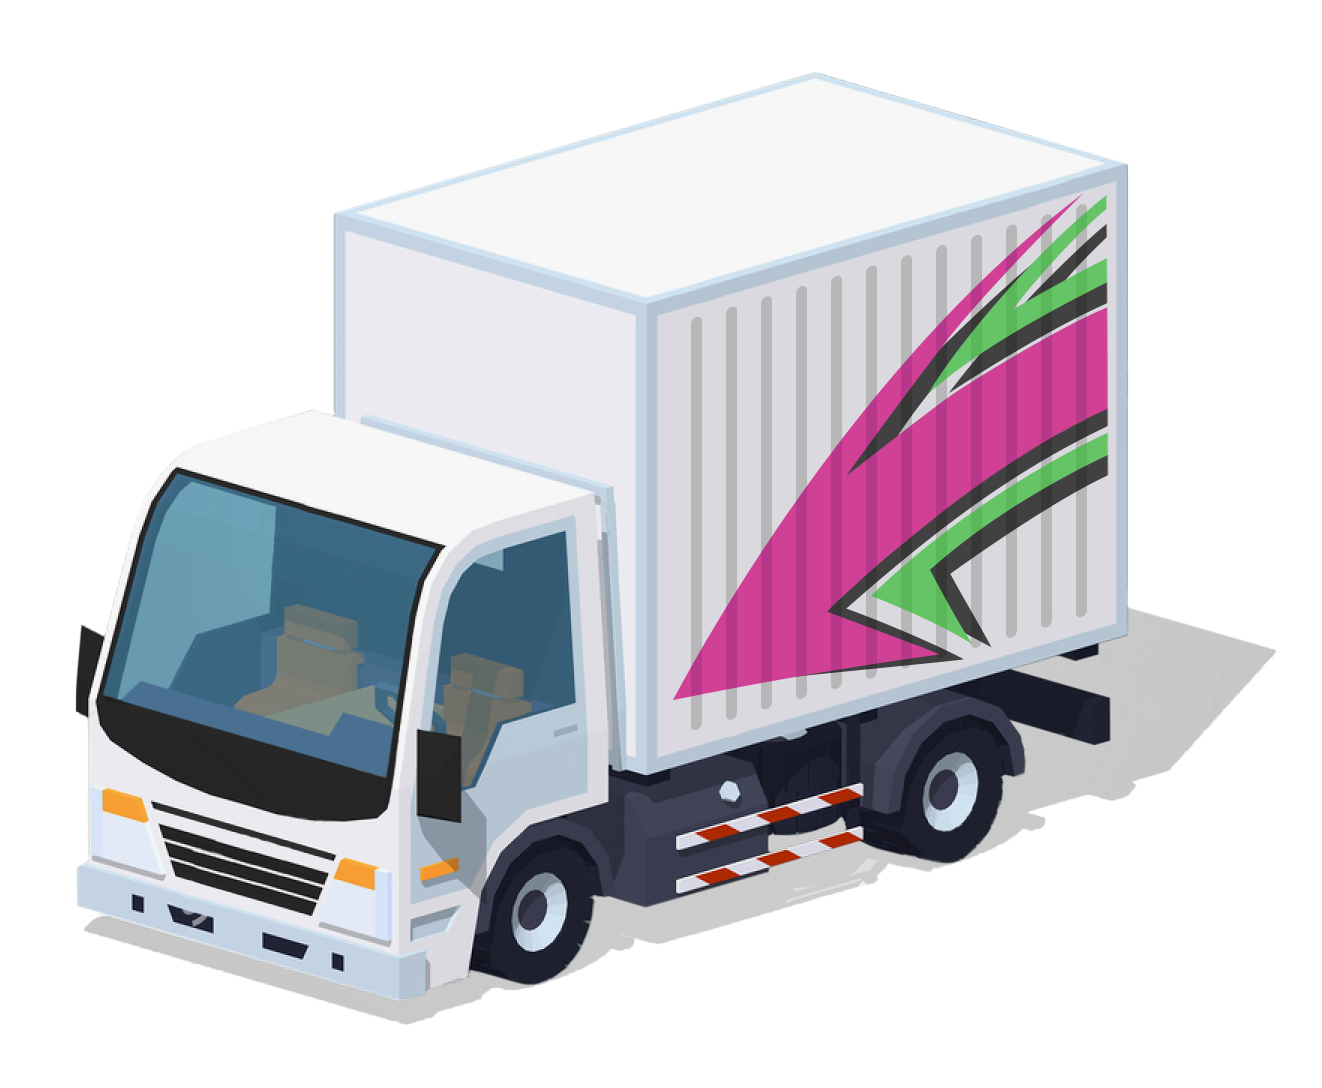 Little-CourierConnection-Truck